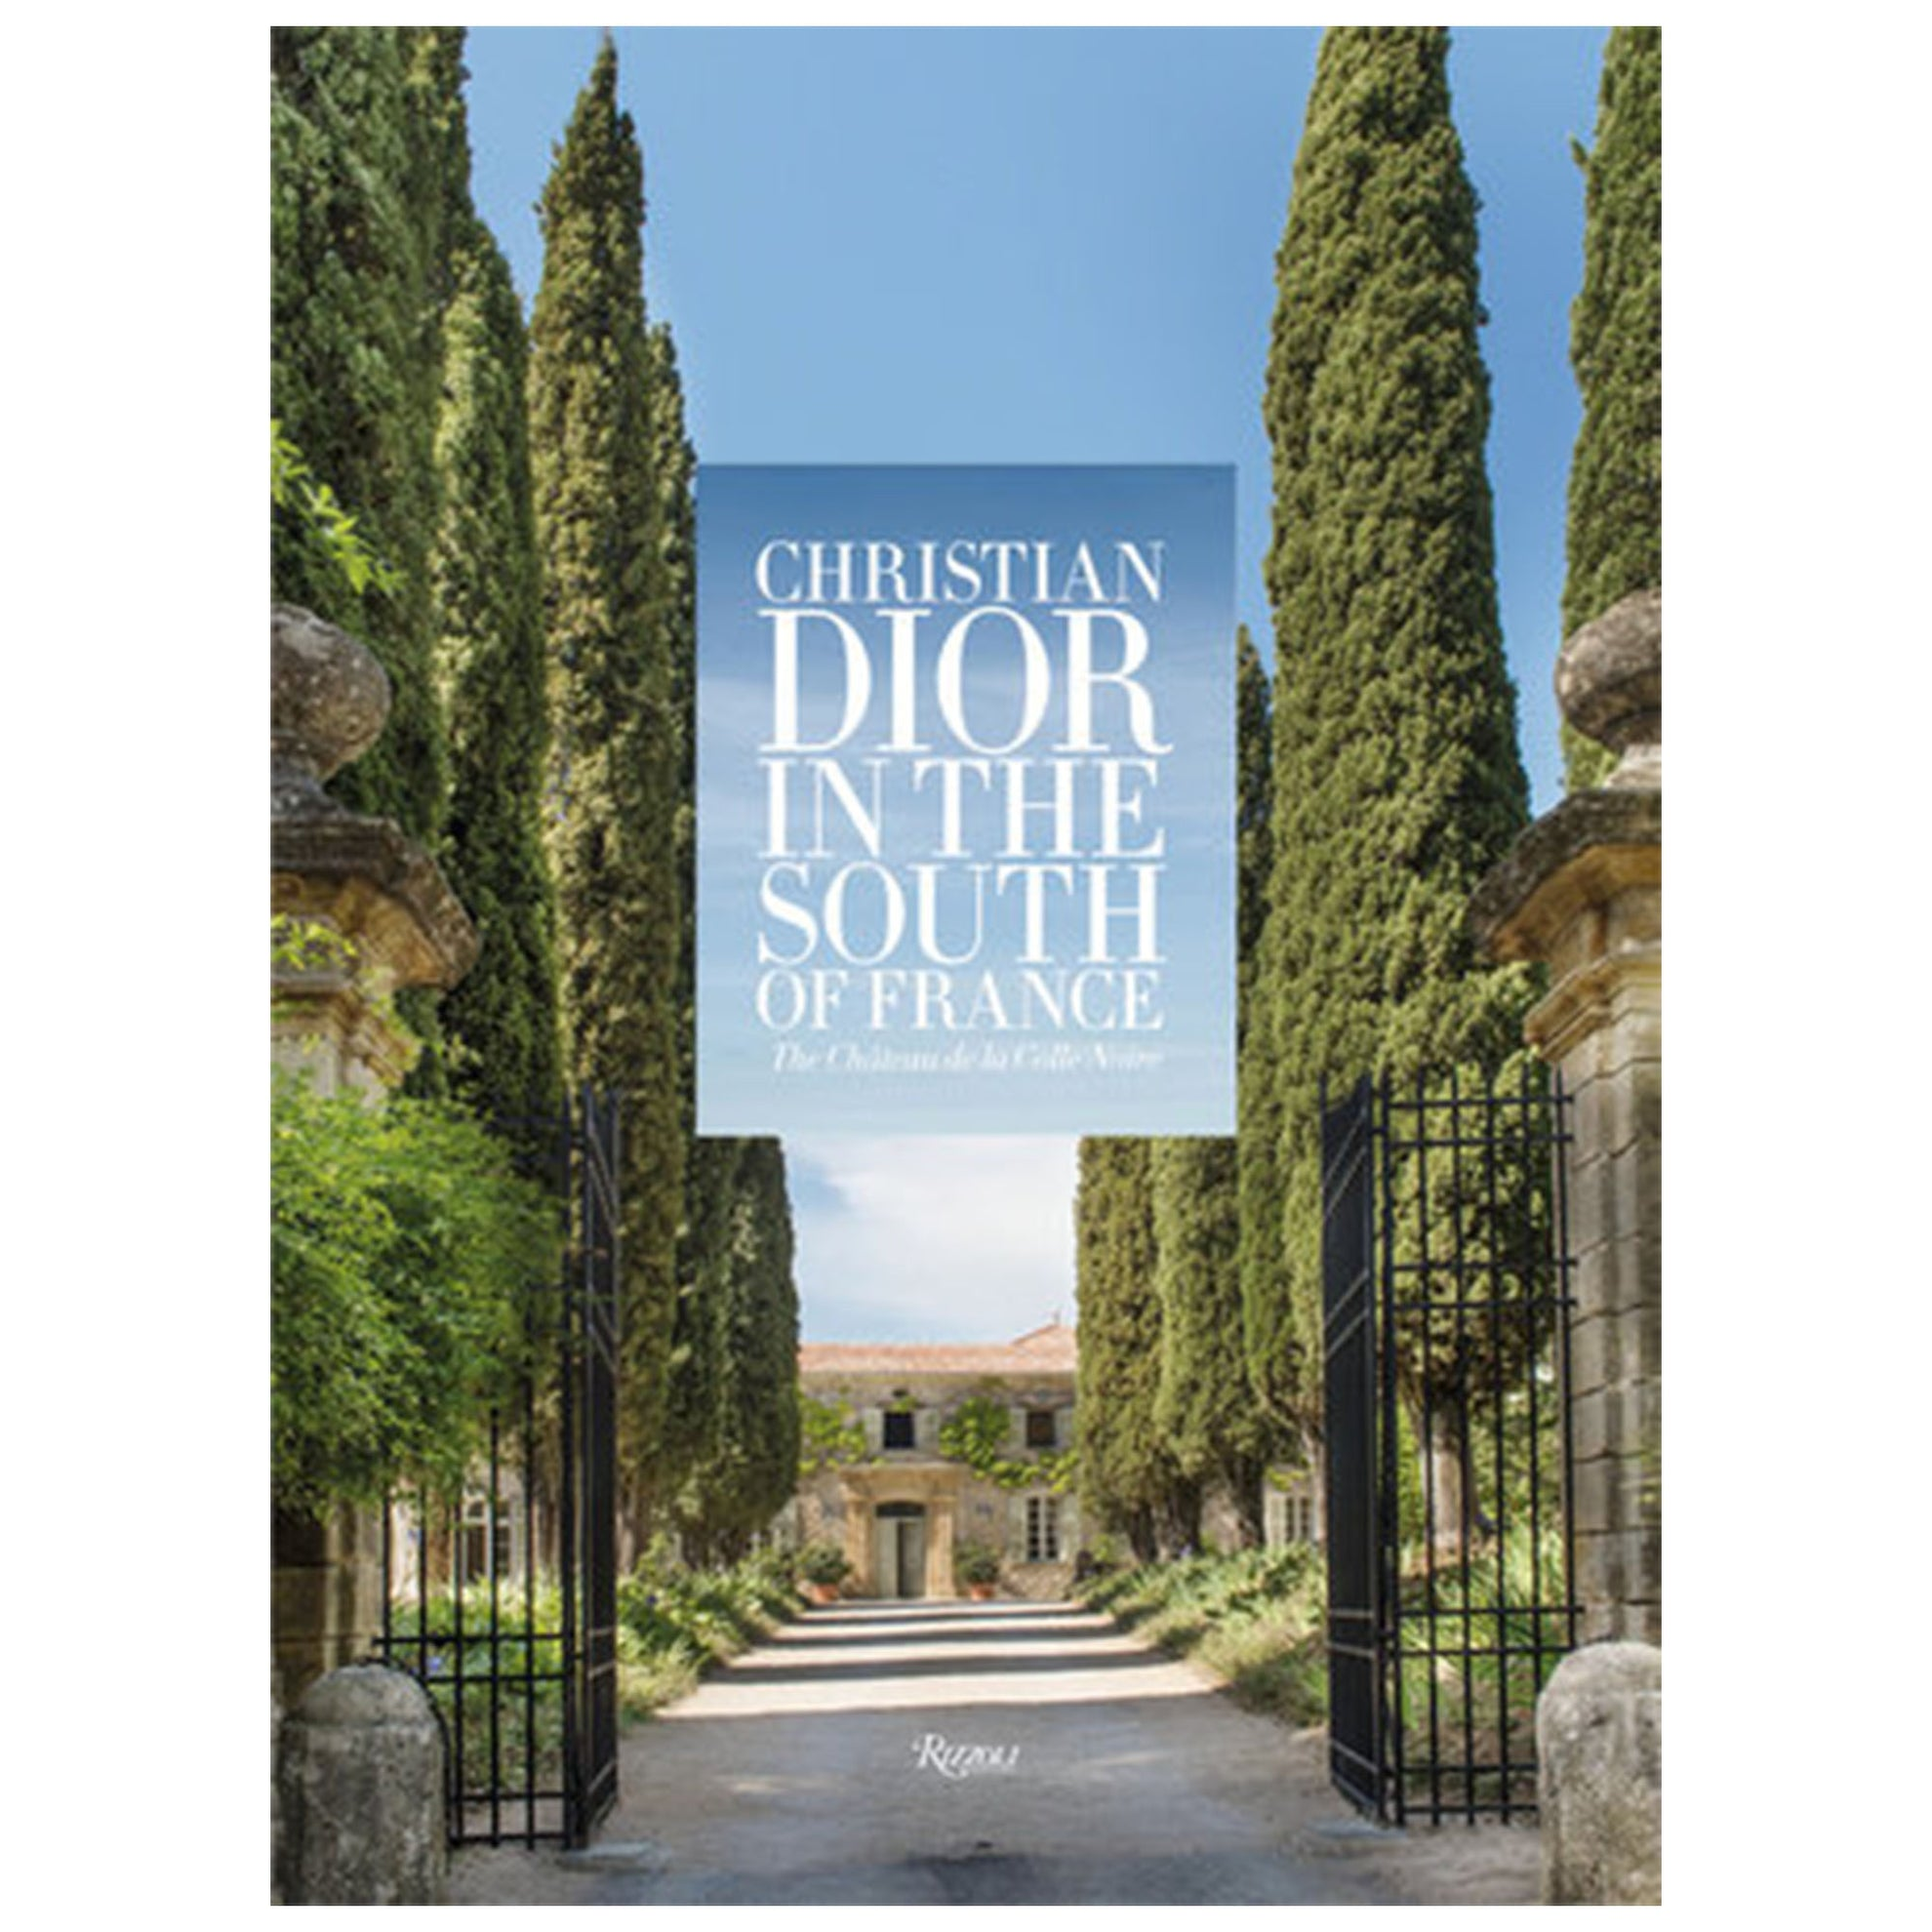 Christian Dior in the South of France: The Château de la Colle Noire